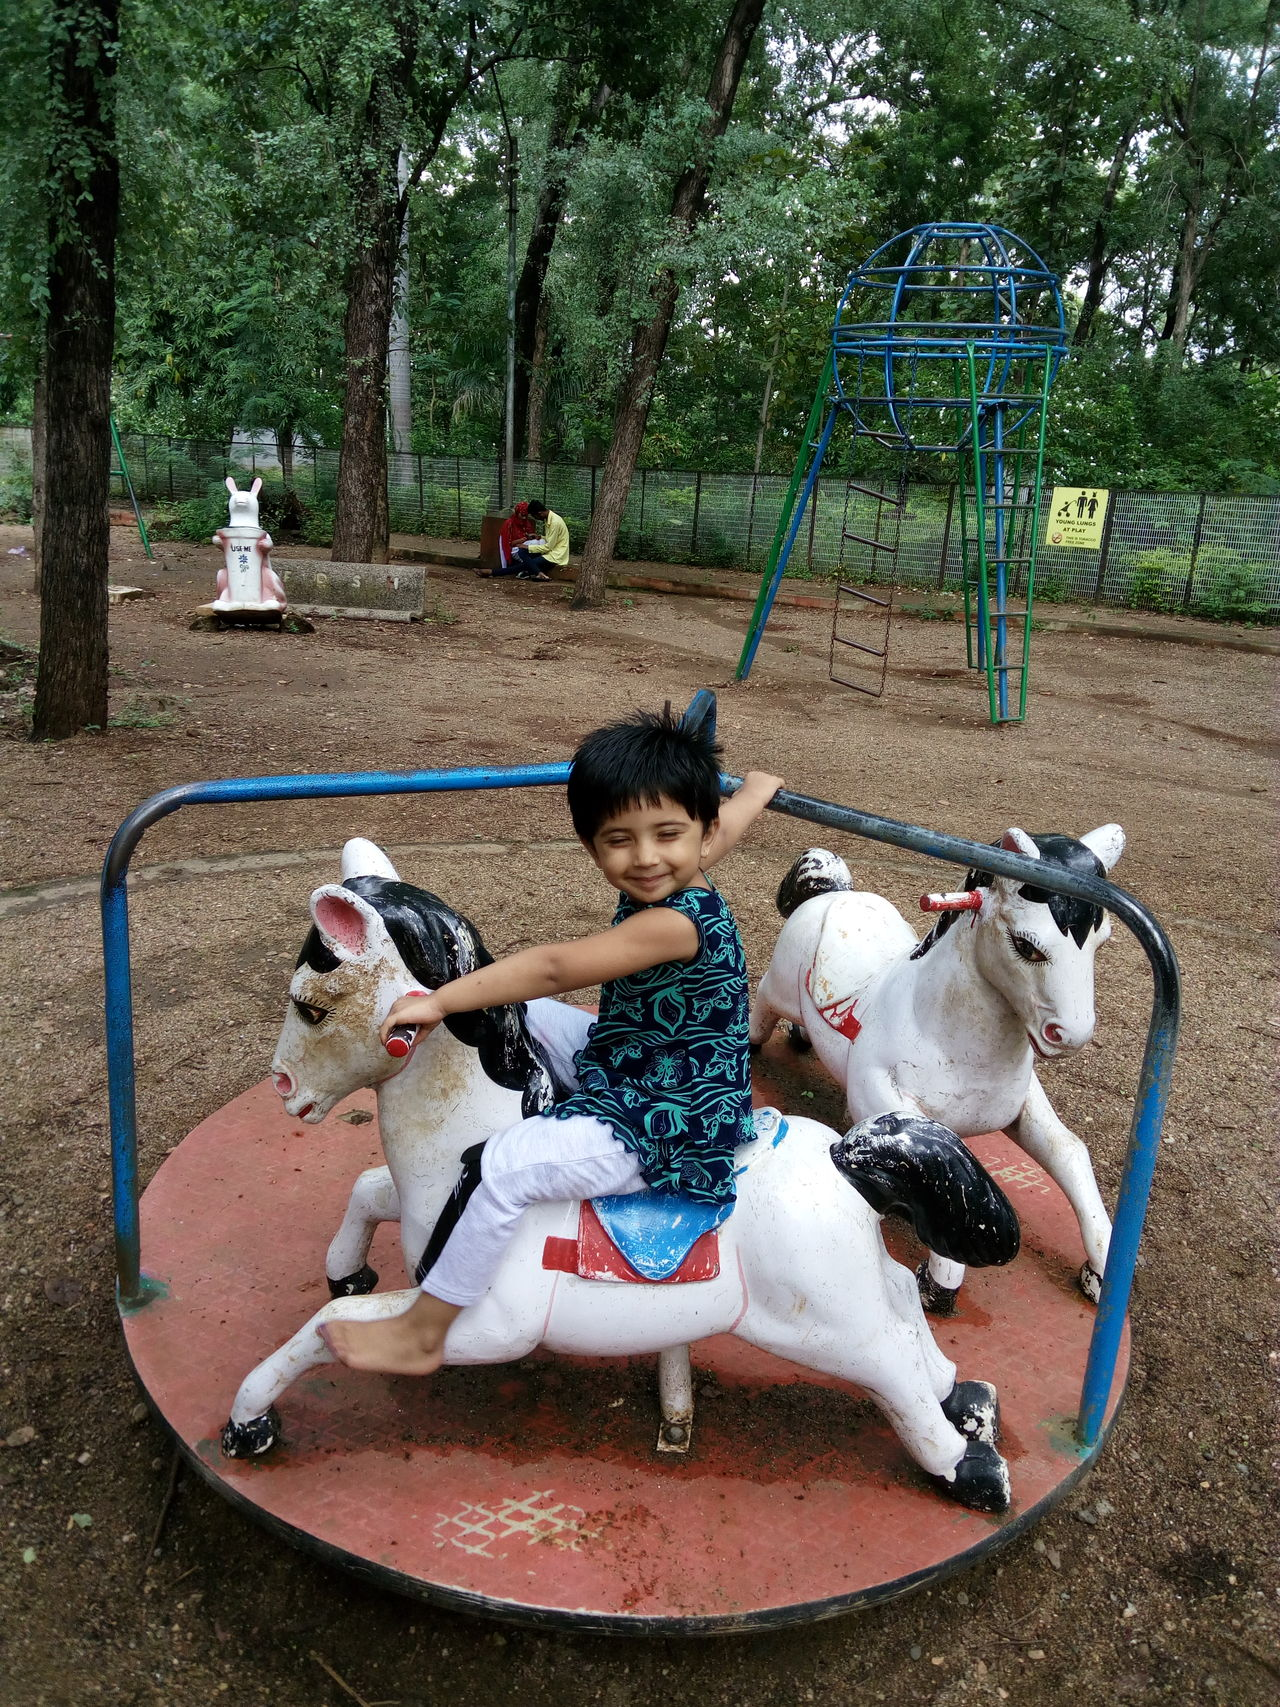 Heyyyy Having Fun In Park Little Girl Little Happyness Cute Girl Horse Riding Old Days Cute Smile  Best Of EyeEm Week On Eyeem EyeEm Best Shots EyeEm Gallery EyeEm Street Photography But Still A Lot To See In Nagpur,India People And Places